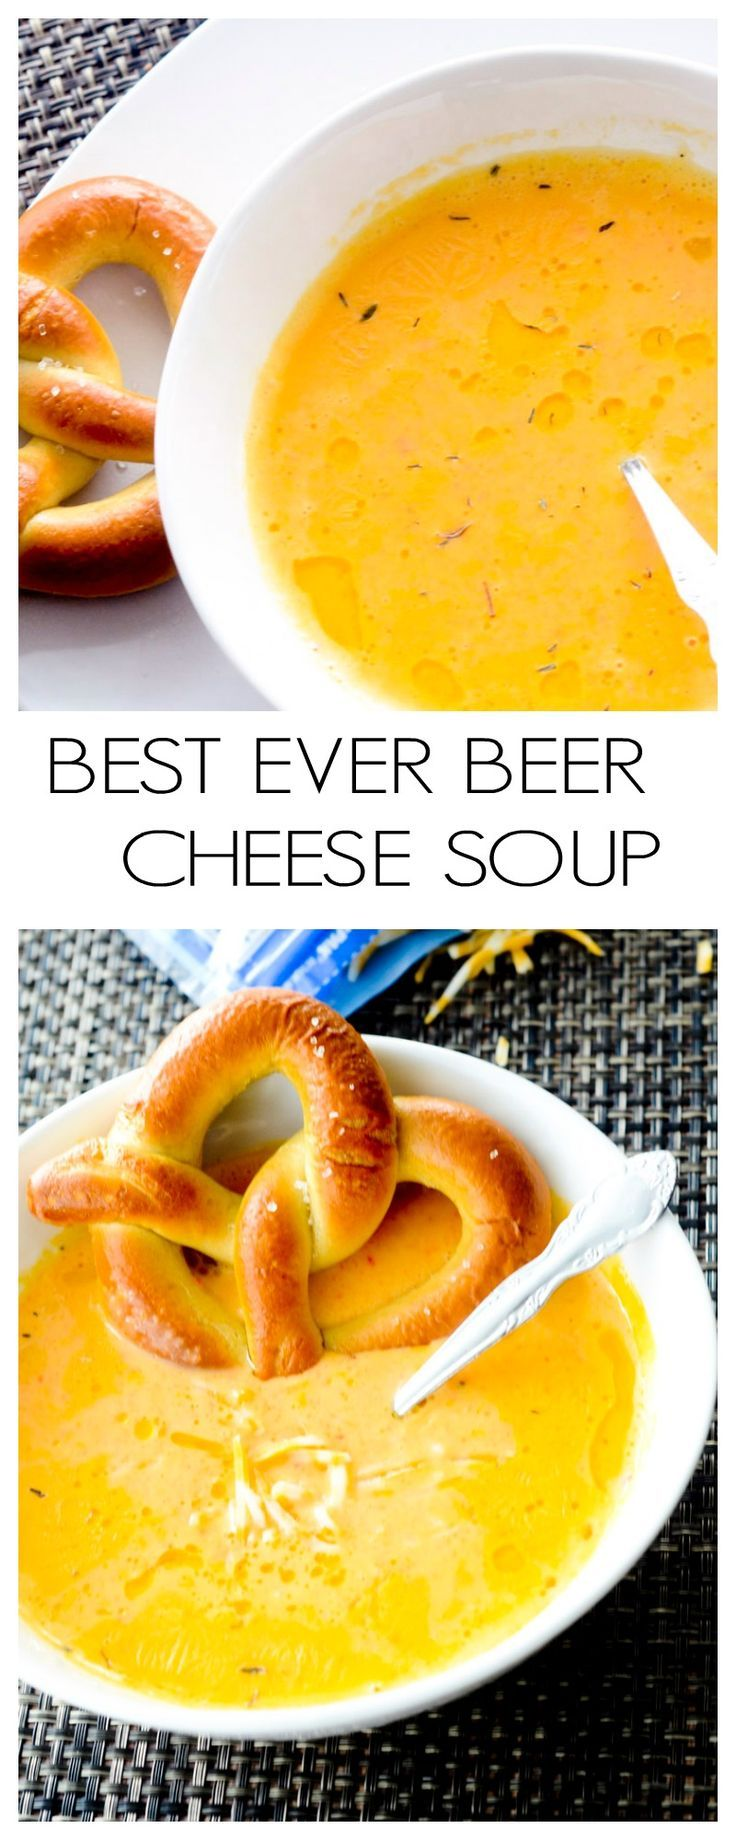 Best Ever Beer Cheese Soup. This soup recipe is an indulgent comfort food favorite packed with cheesy goodness. Plus it's made with beer which automatically makes it better.